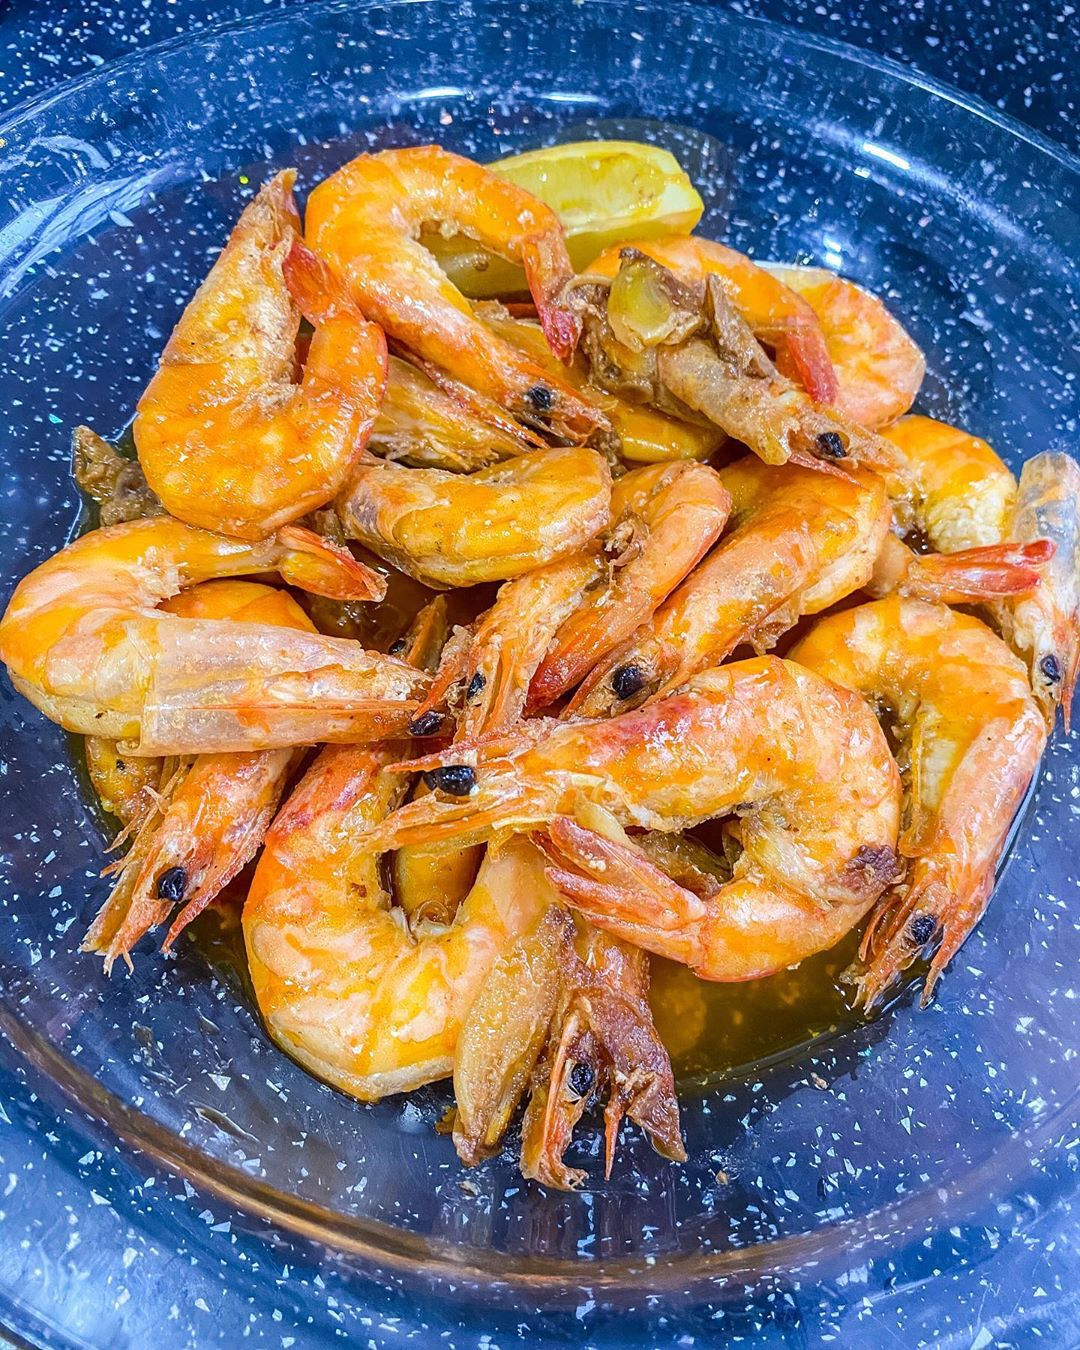 Portuguese Grill Halal Garlic Butter Prawns Portugesegrill Leicester Takeaway Lunch Dinner Portuguese Prawns England Le In 2020 Foodie Food England